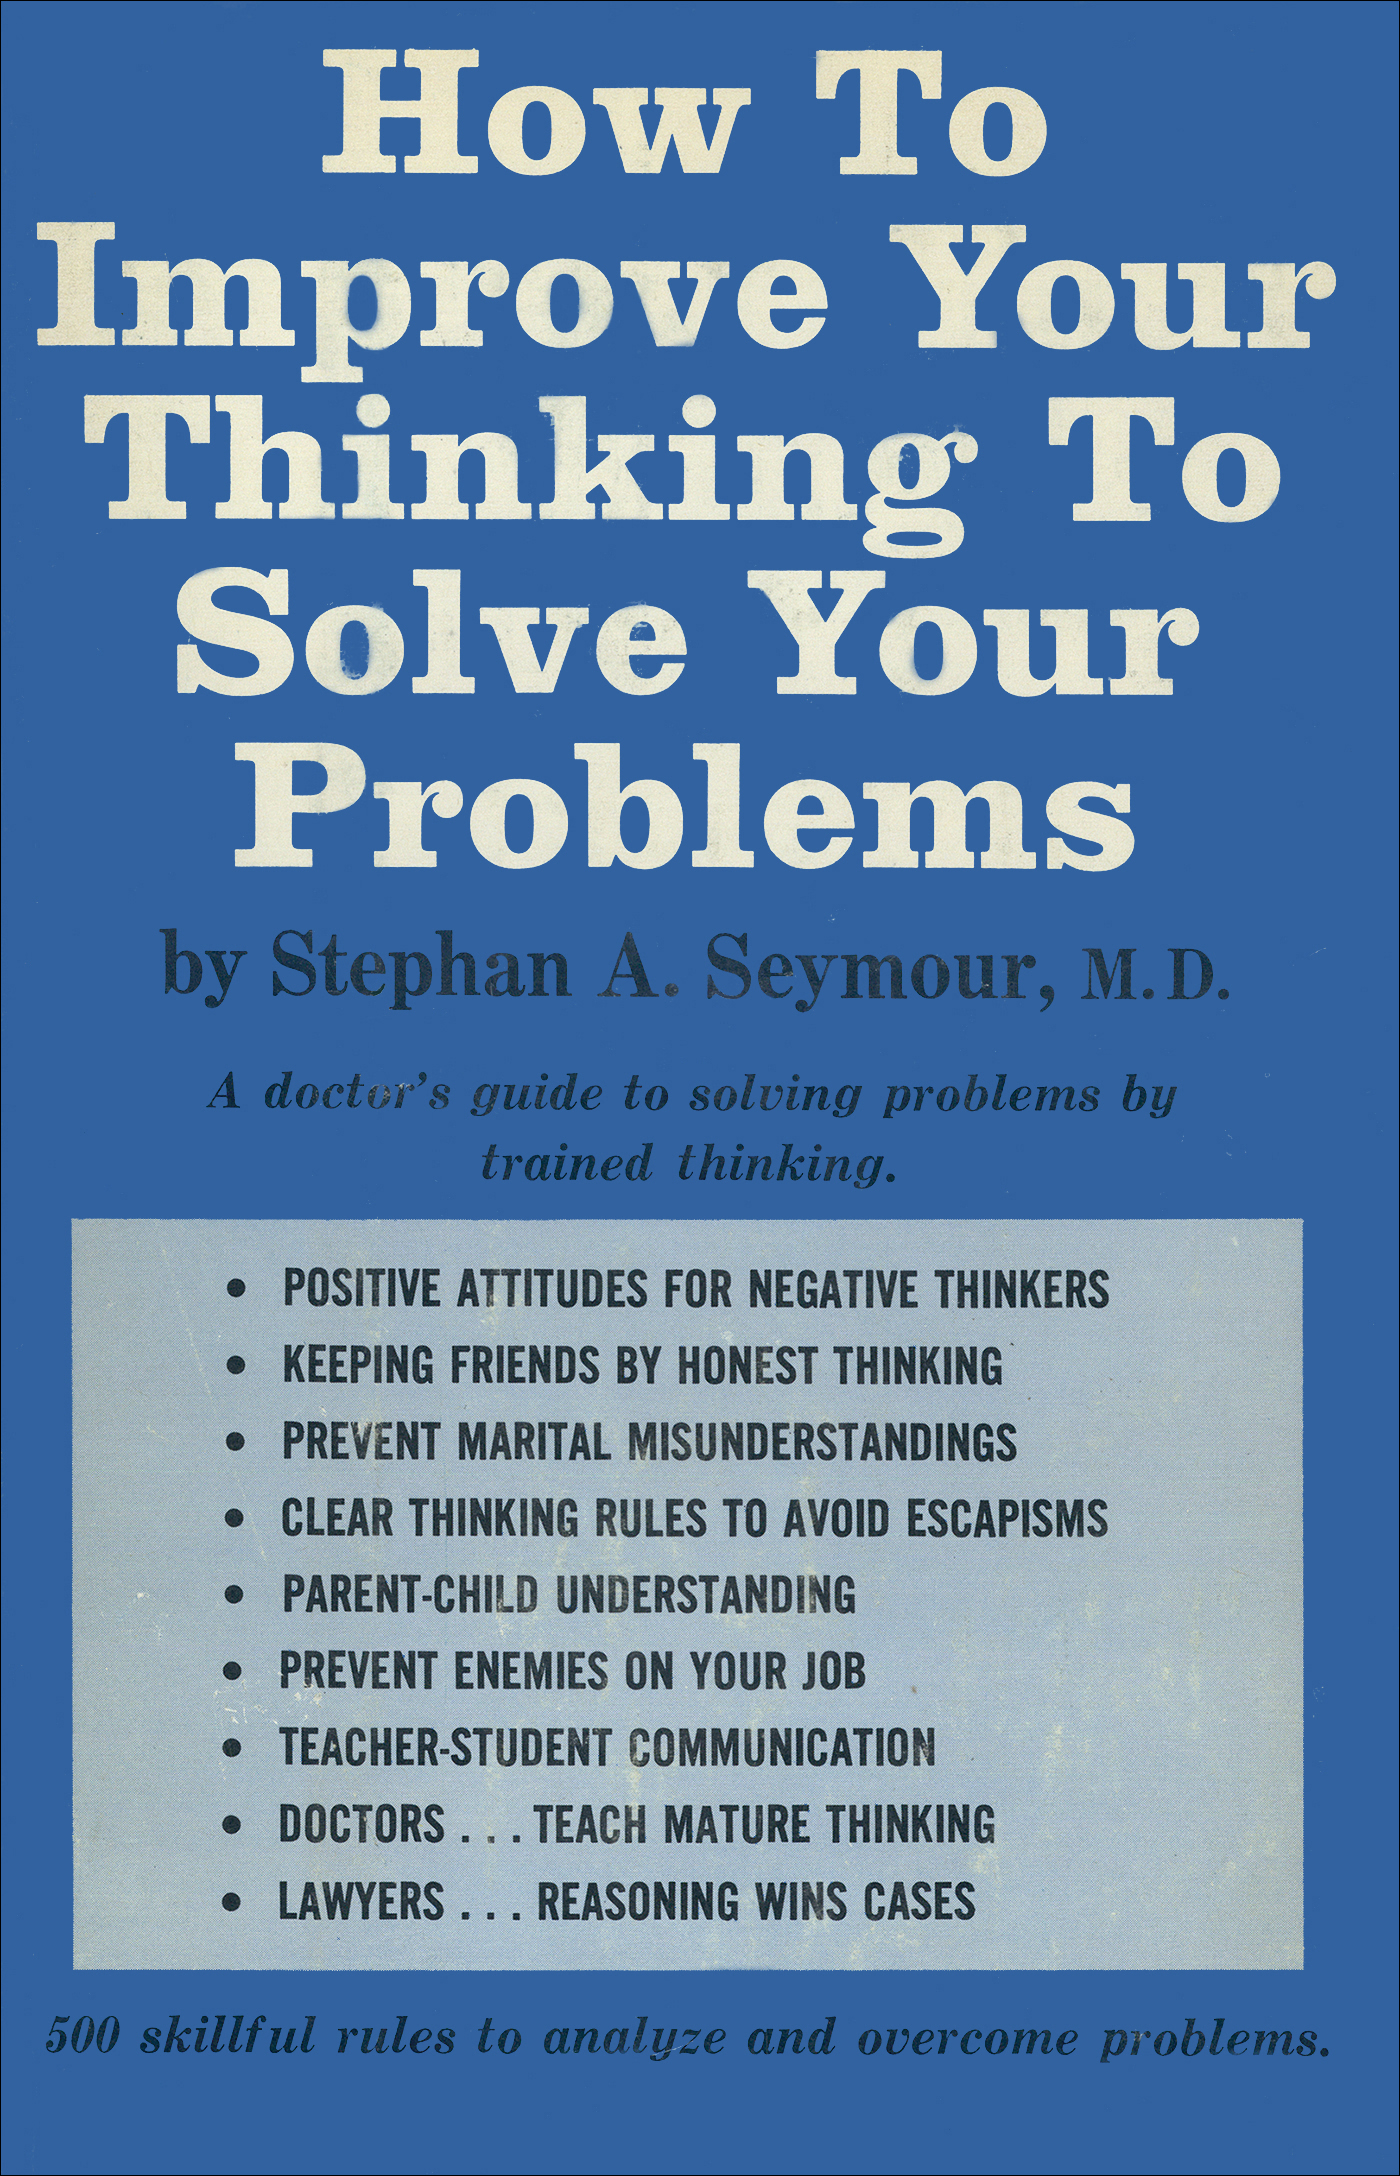 How To Improve Your Thinking To Solve Your Problems